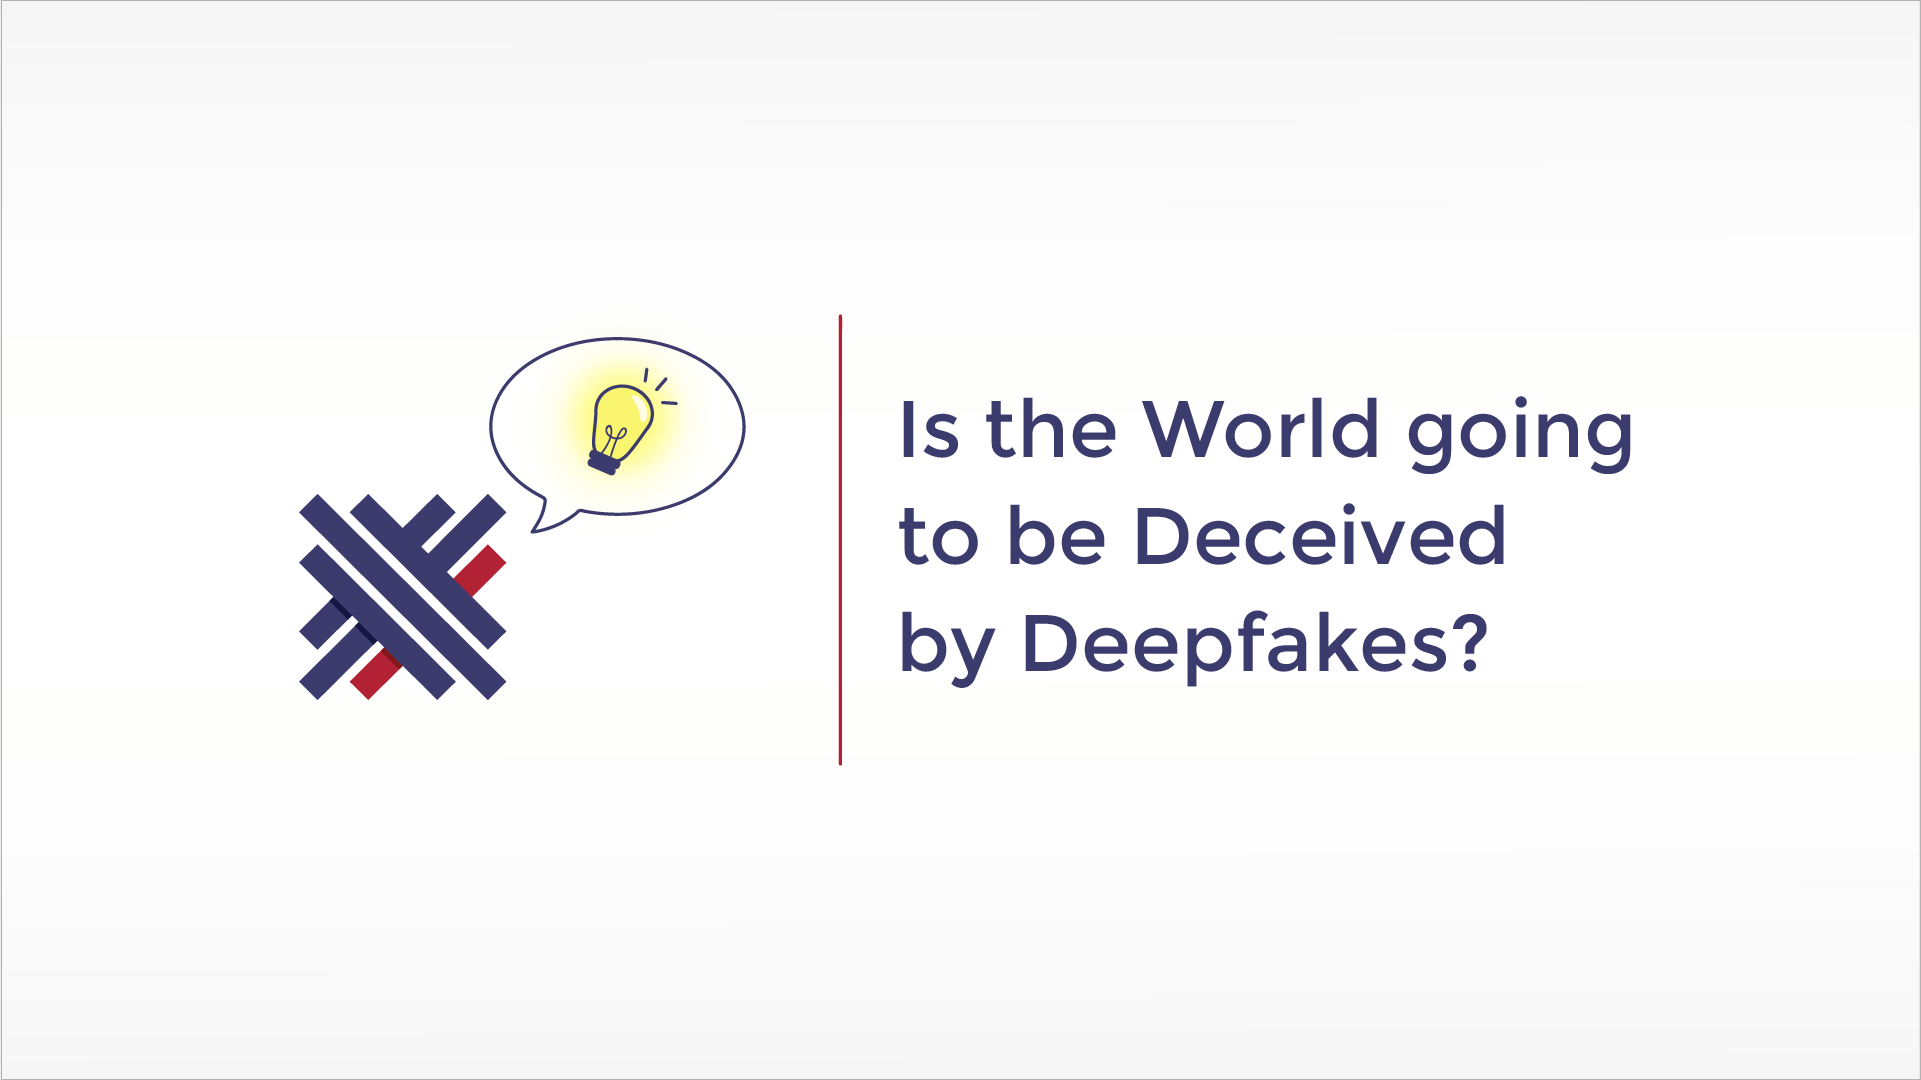 Is the World going to be Deceived by Deepfakes?